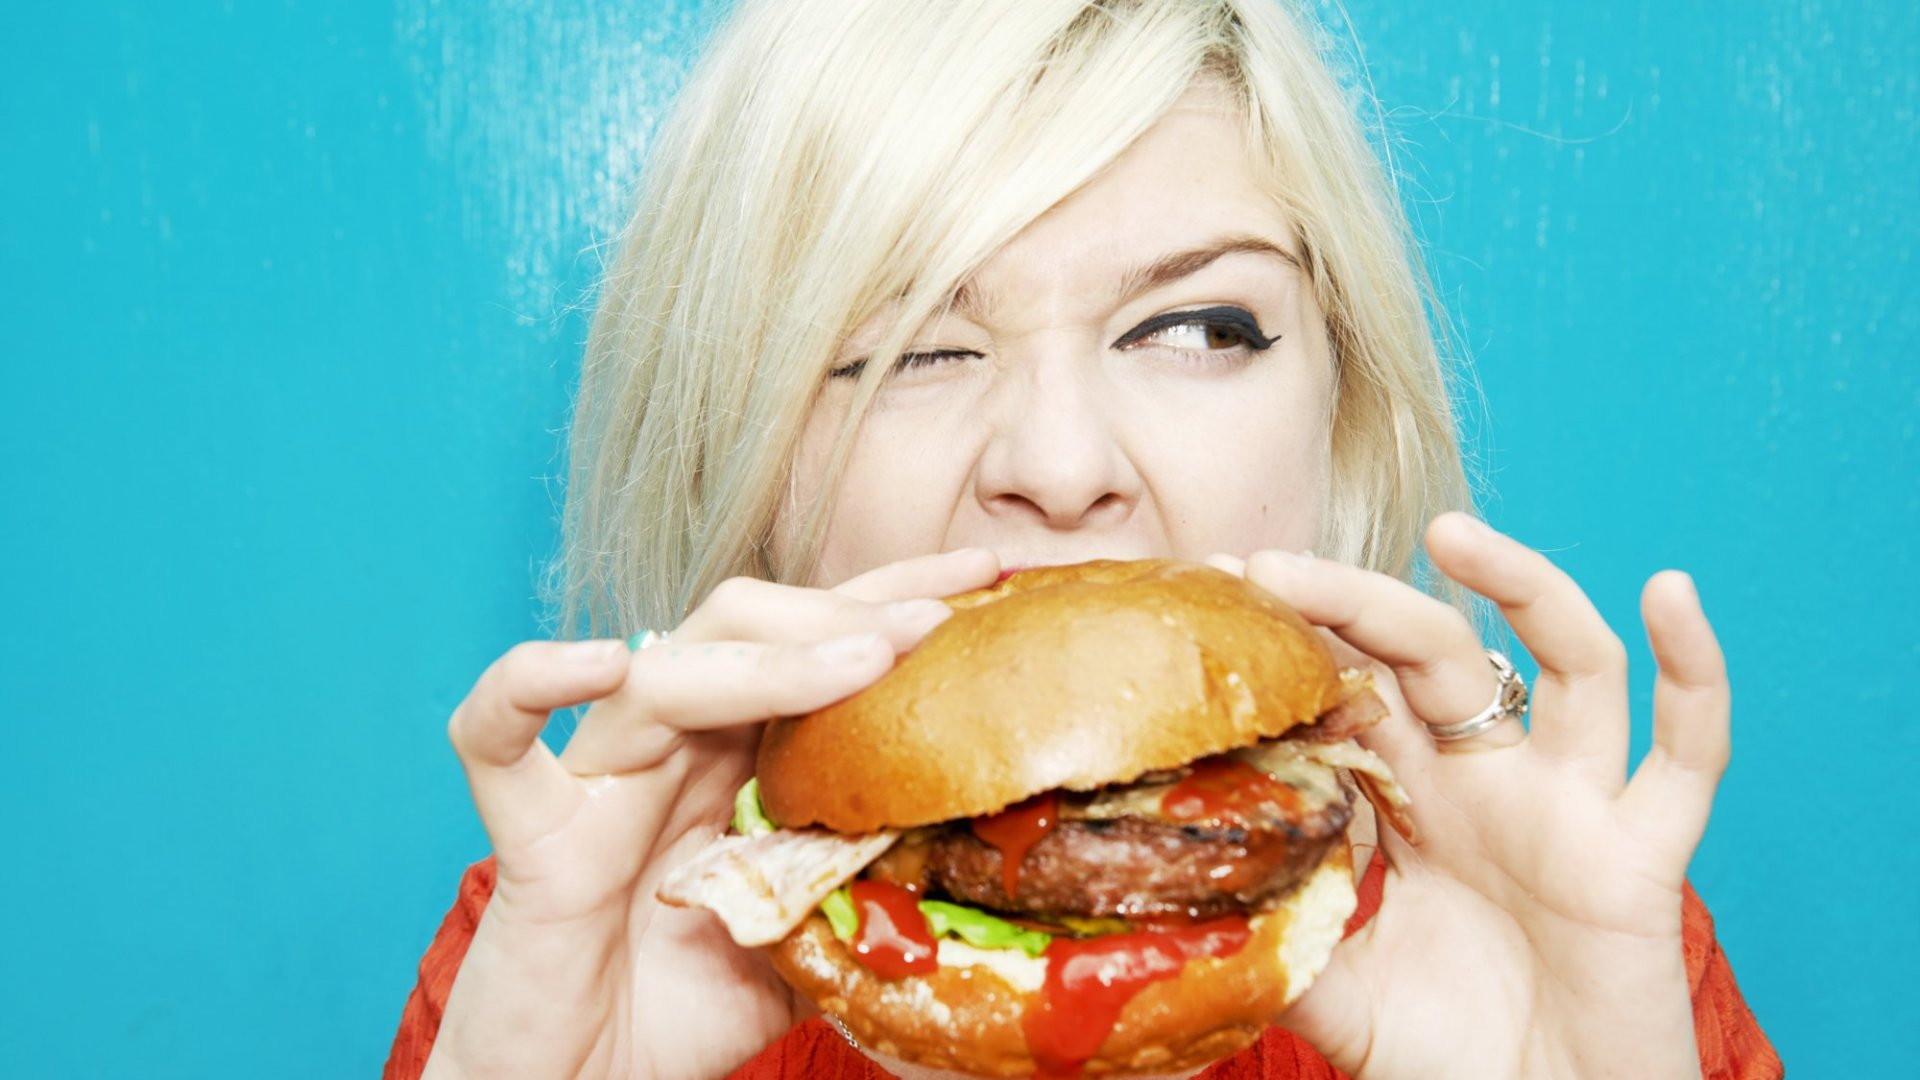 Eat Less of These Foods to Sharpen Your Brain, Science Says